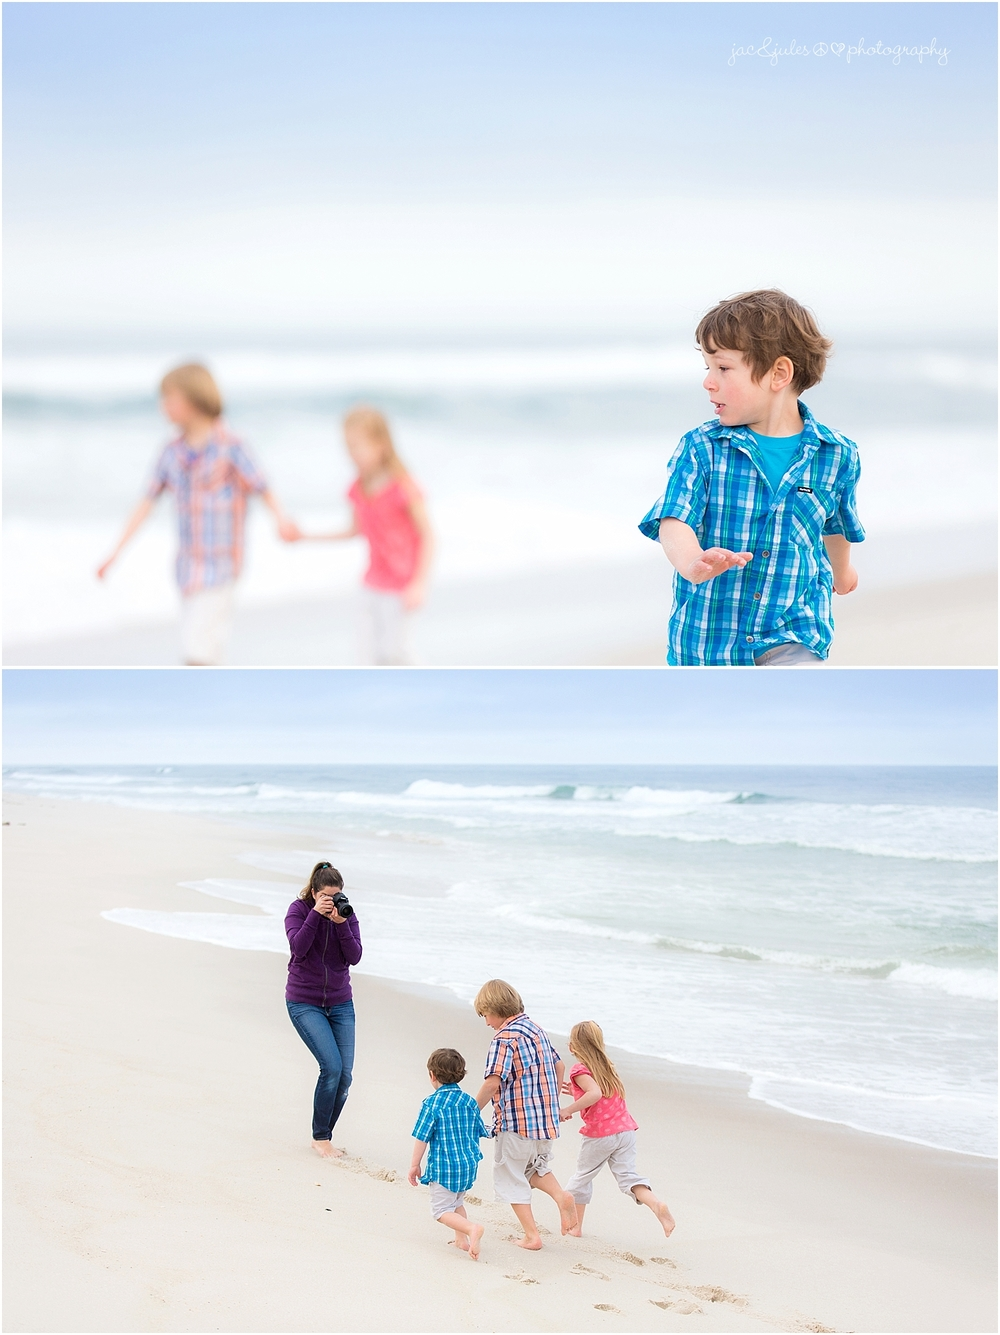 jacnjules photographs children on the beach at the jersey shore